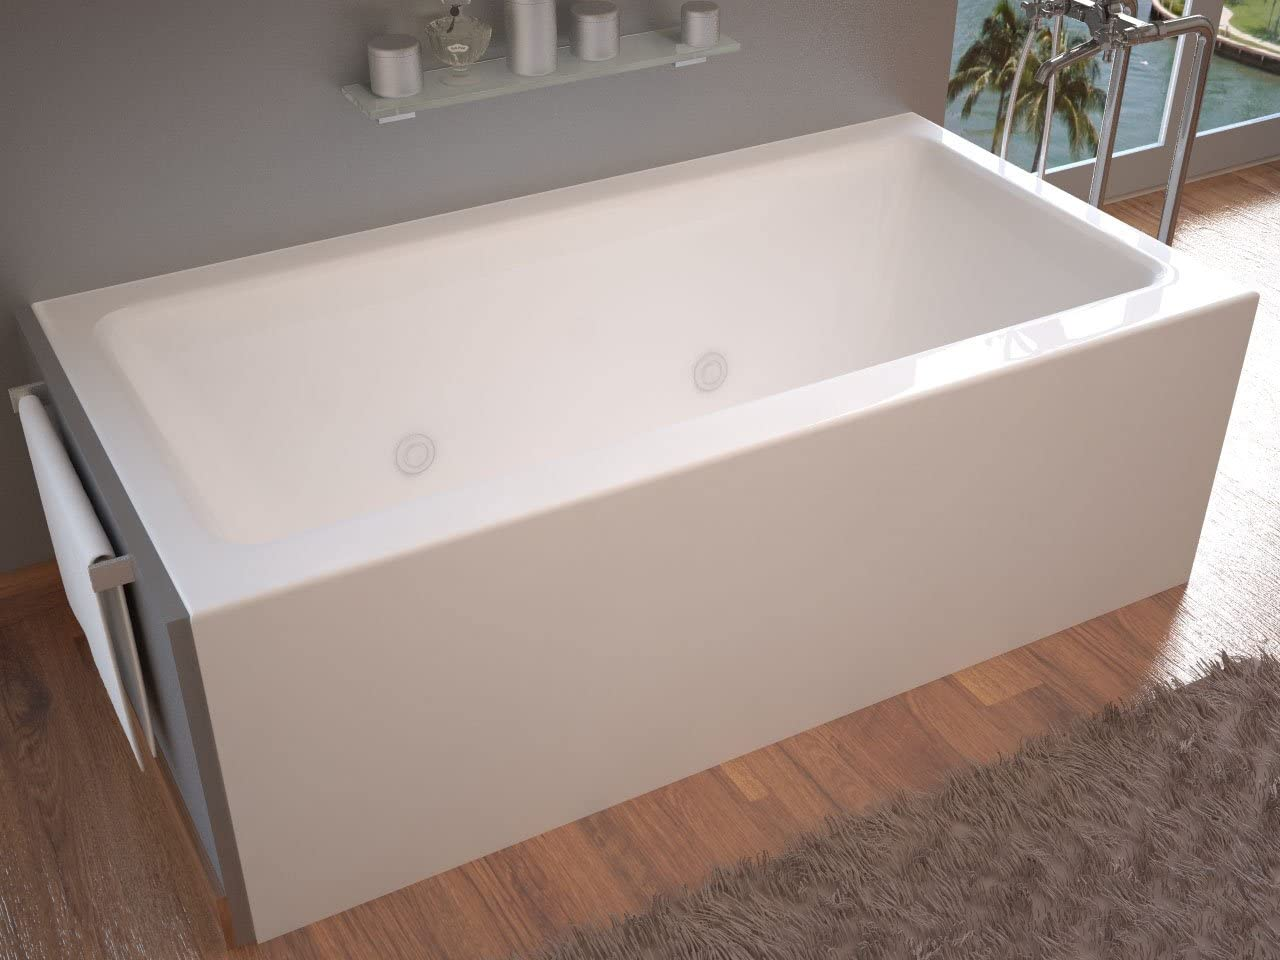 Atlantis Whirlpools 3260SHWL Soho 32 Inch by 60 Inch Front Skirted, Whirlpool Tub, Left Drain